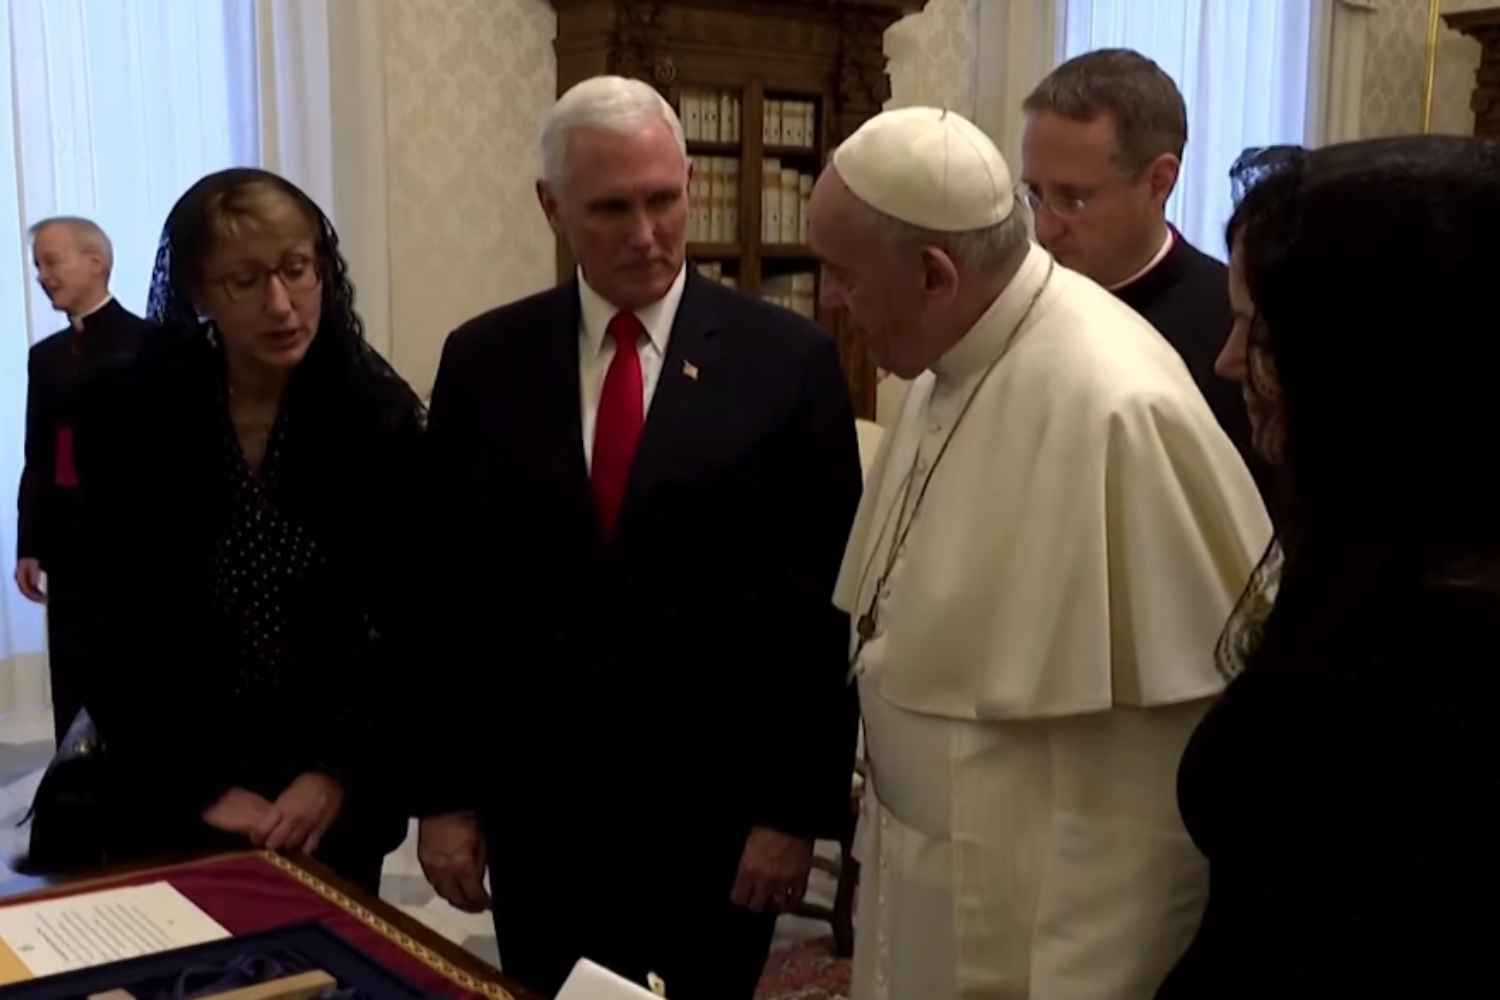 VP Pence meets Pope Francis at Vatican for hour-long private conversation